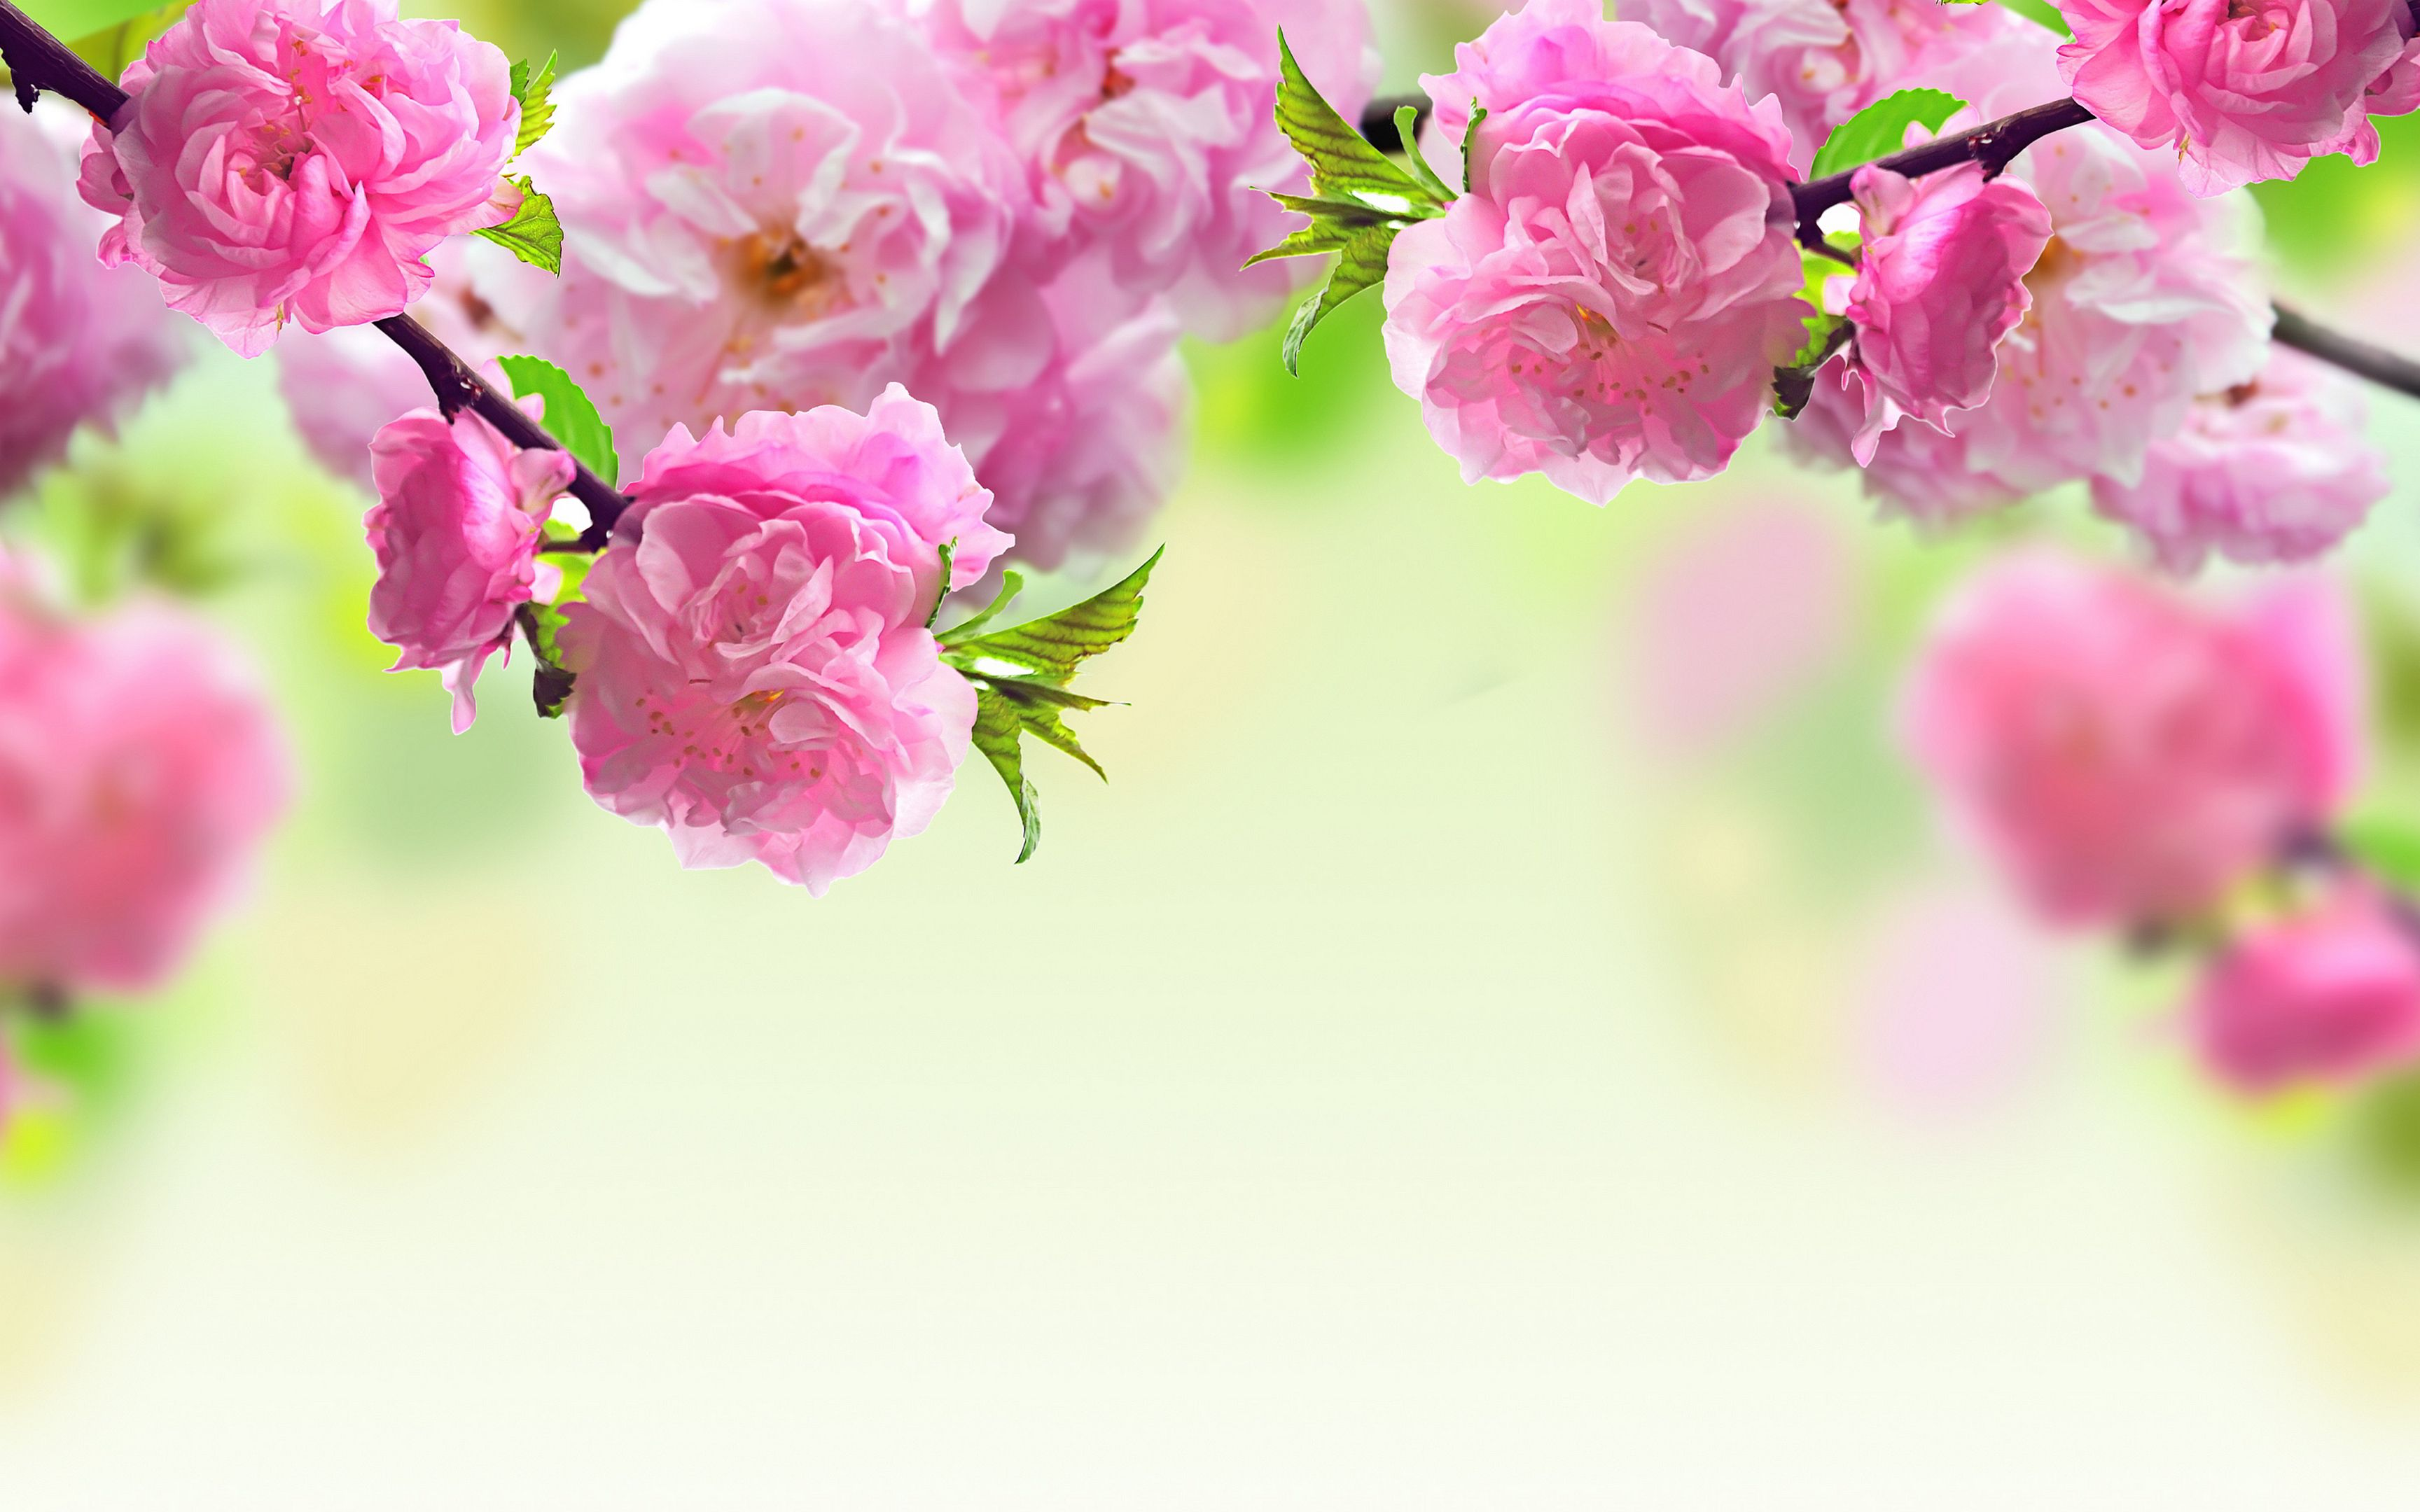 Spring Flowers Desktop Wallpaper 3456x2160 Plants Desktop Wp S